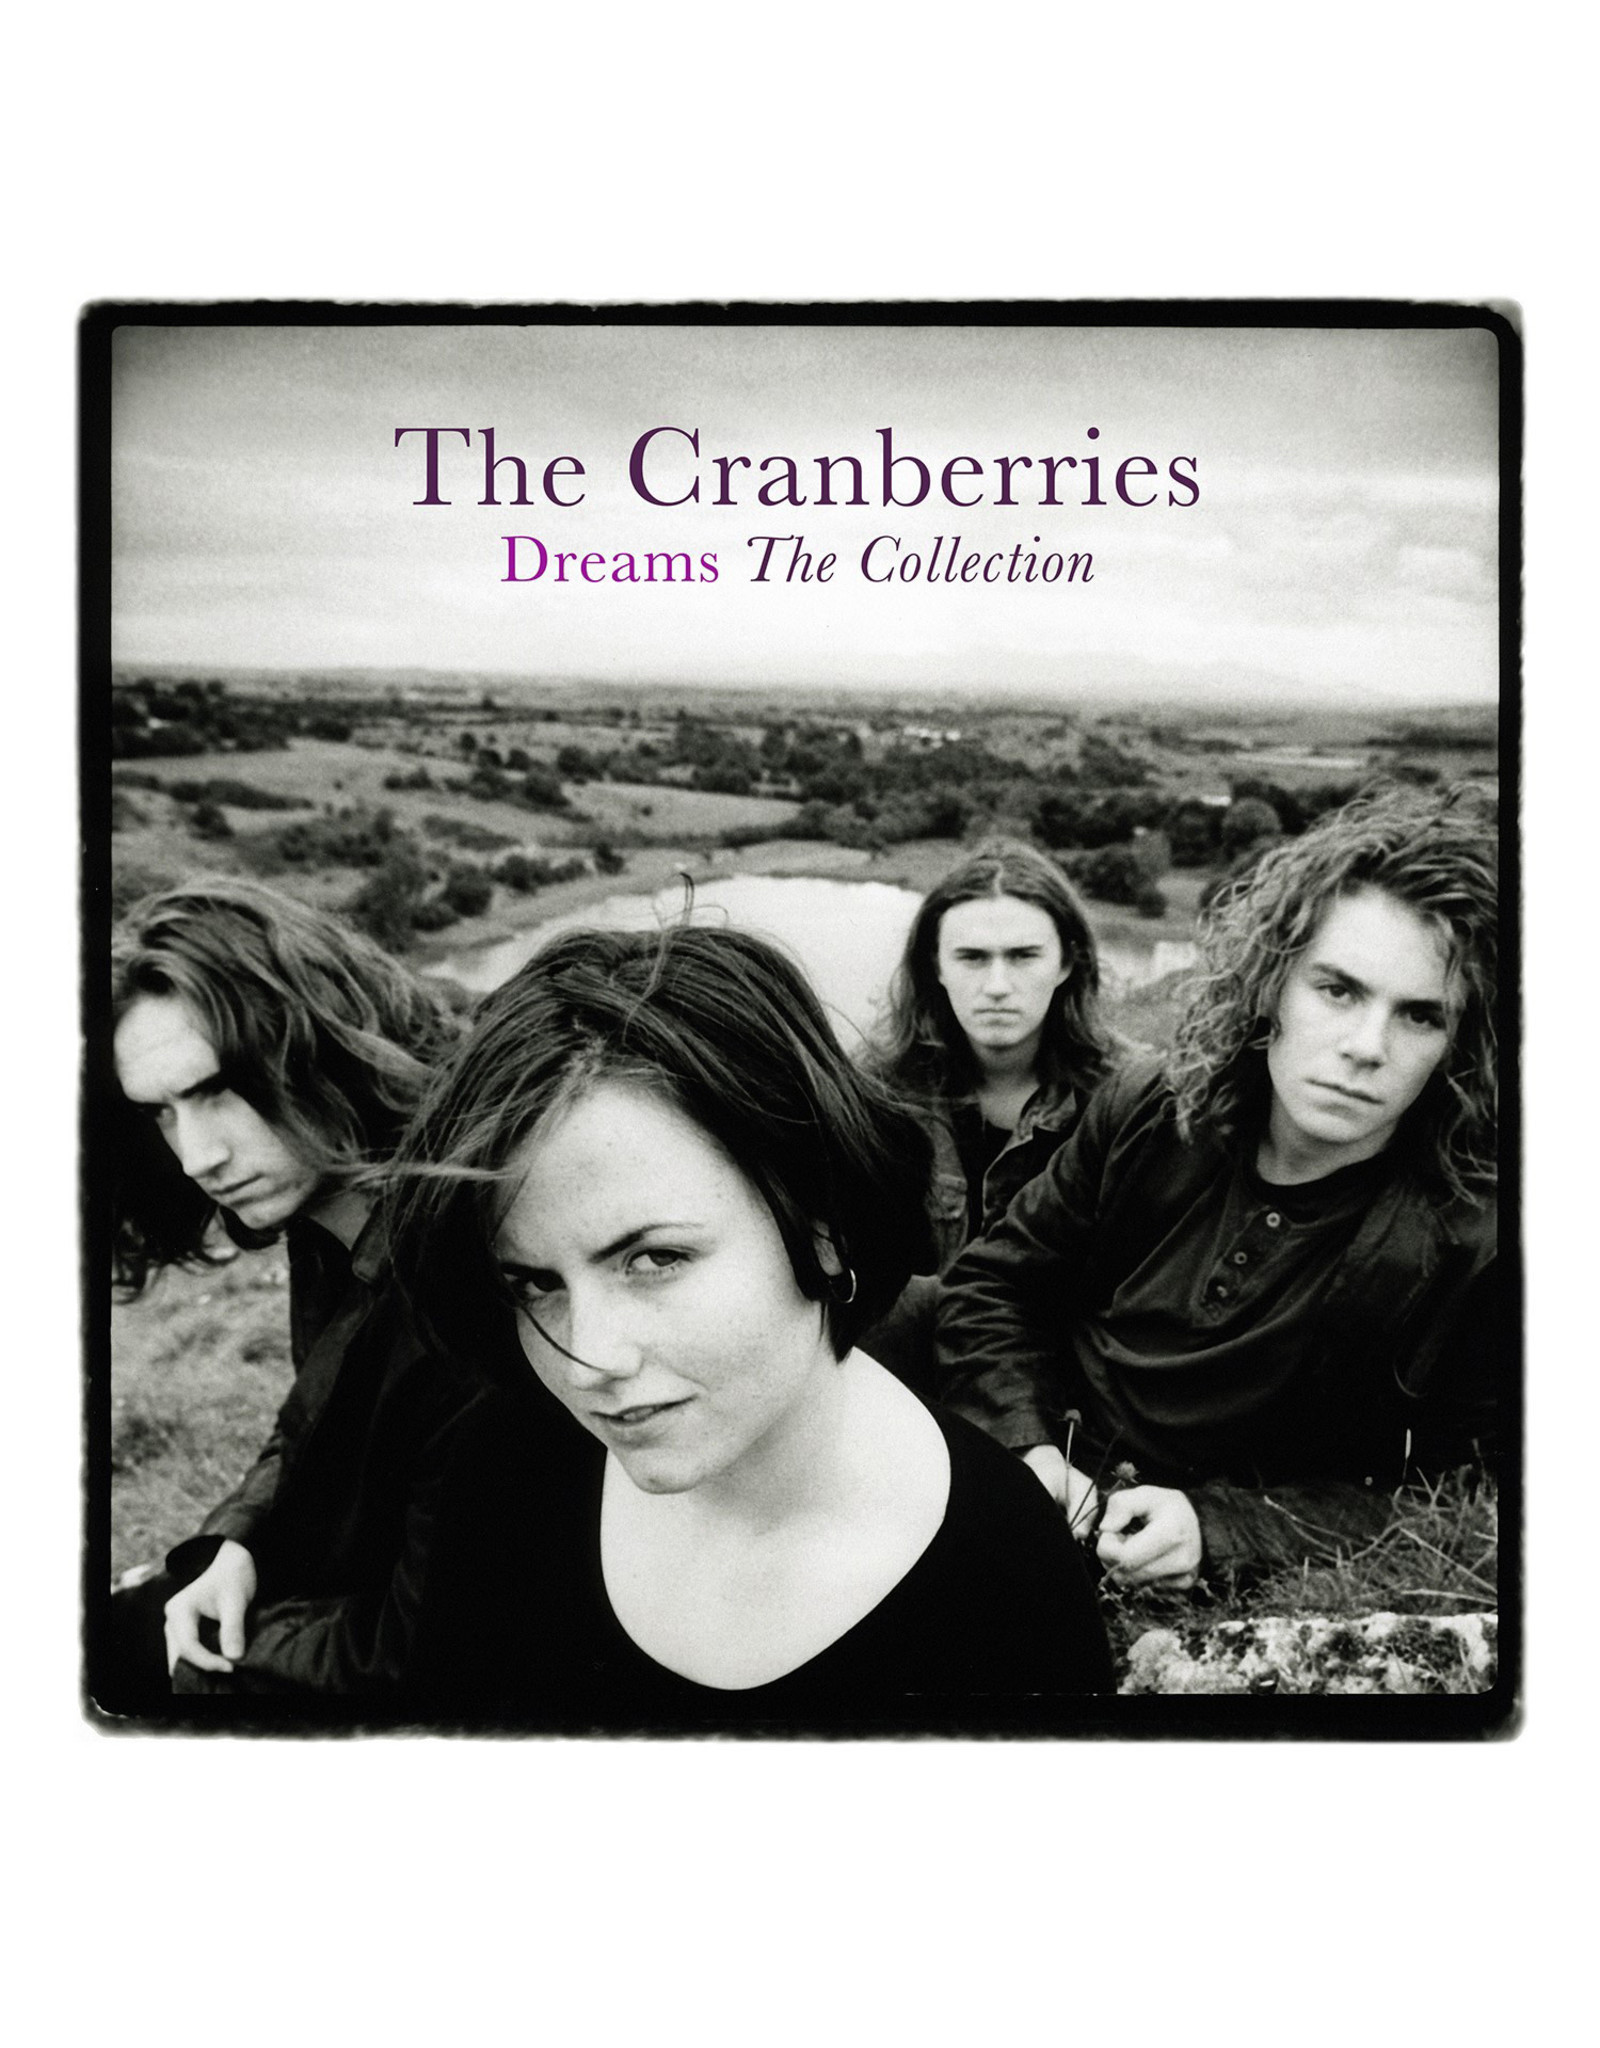 Cranberries, The - Dreams: The Collection LP